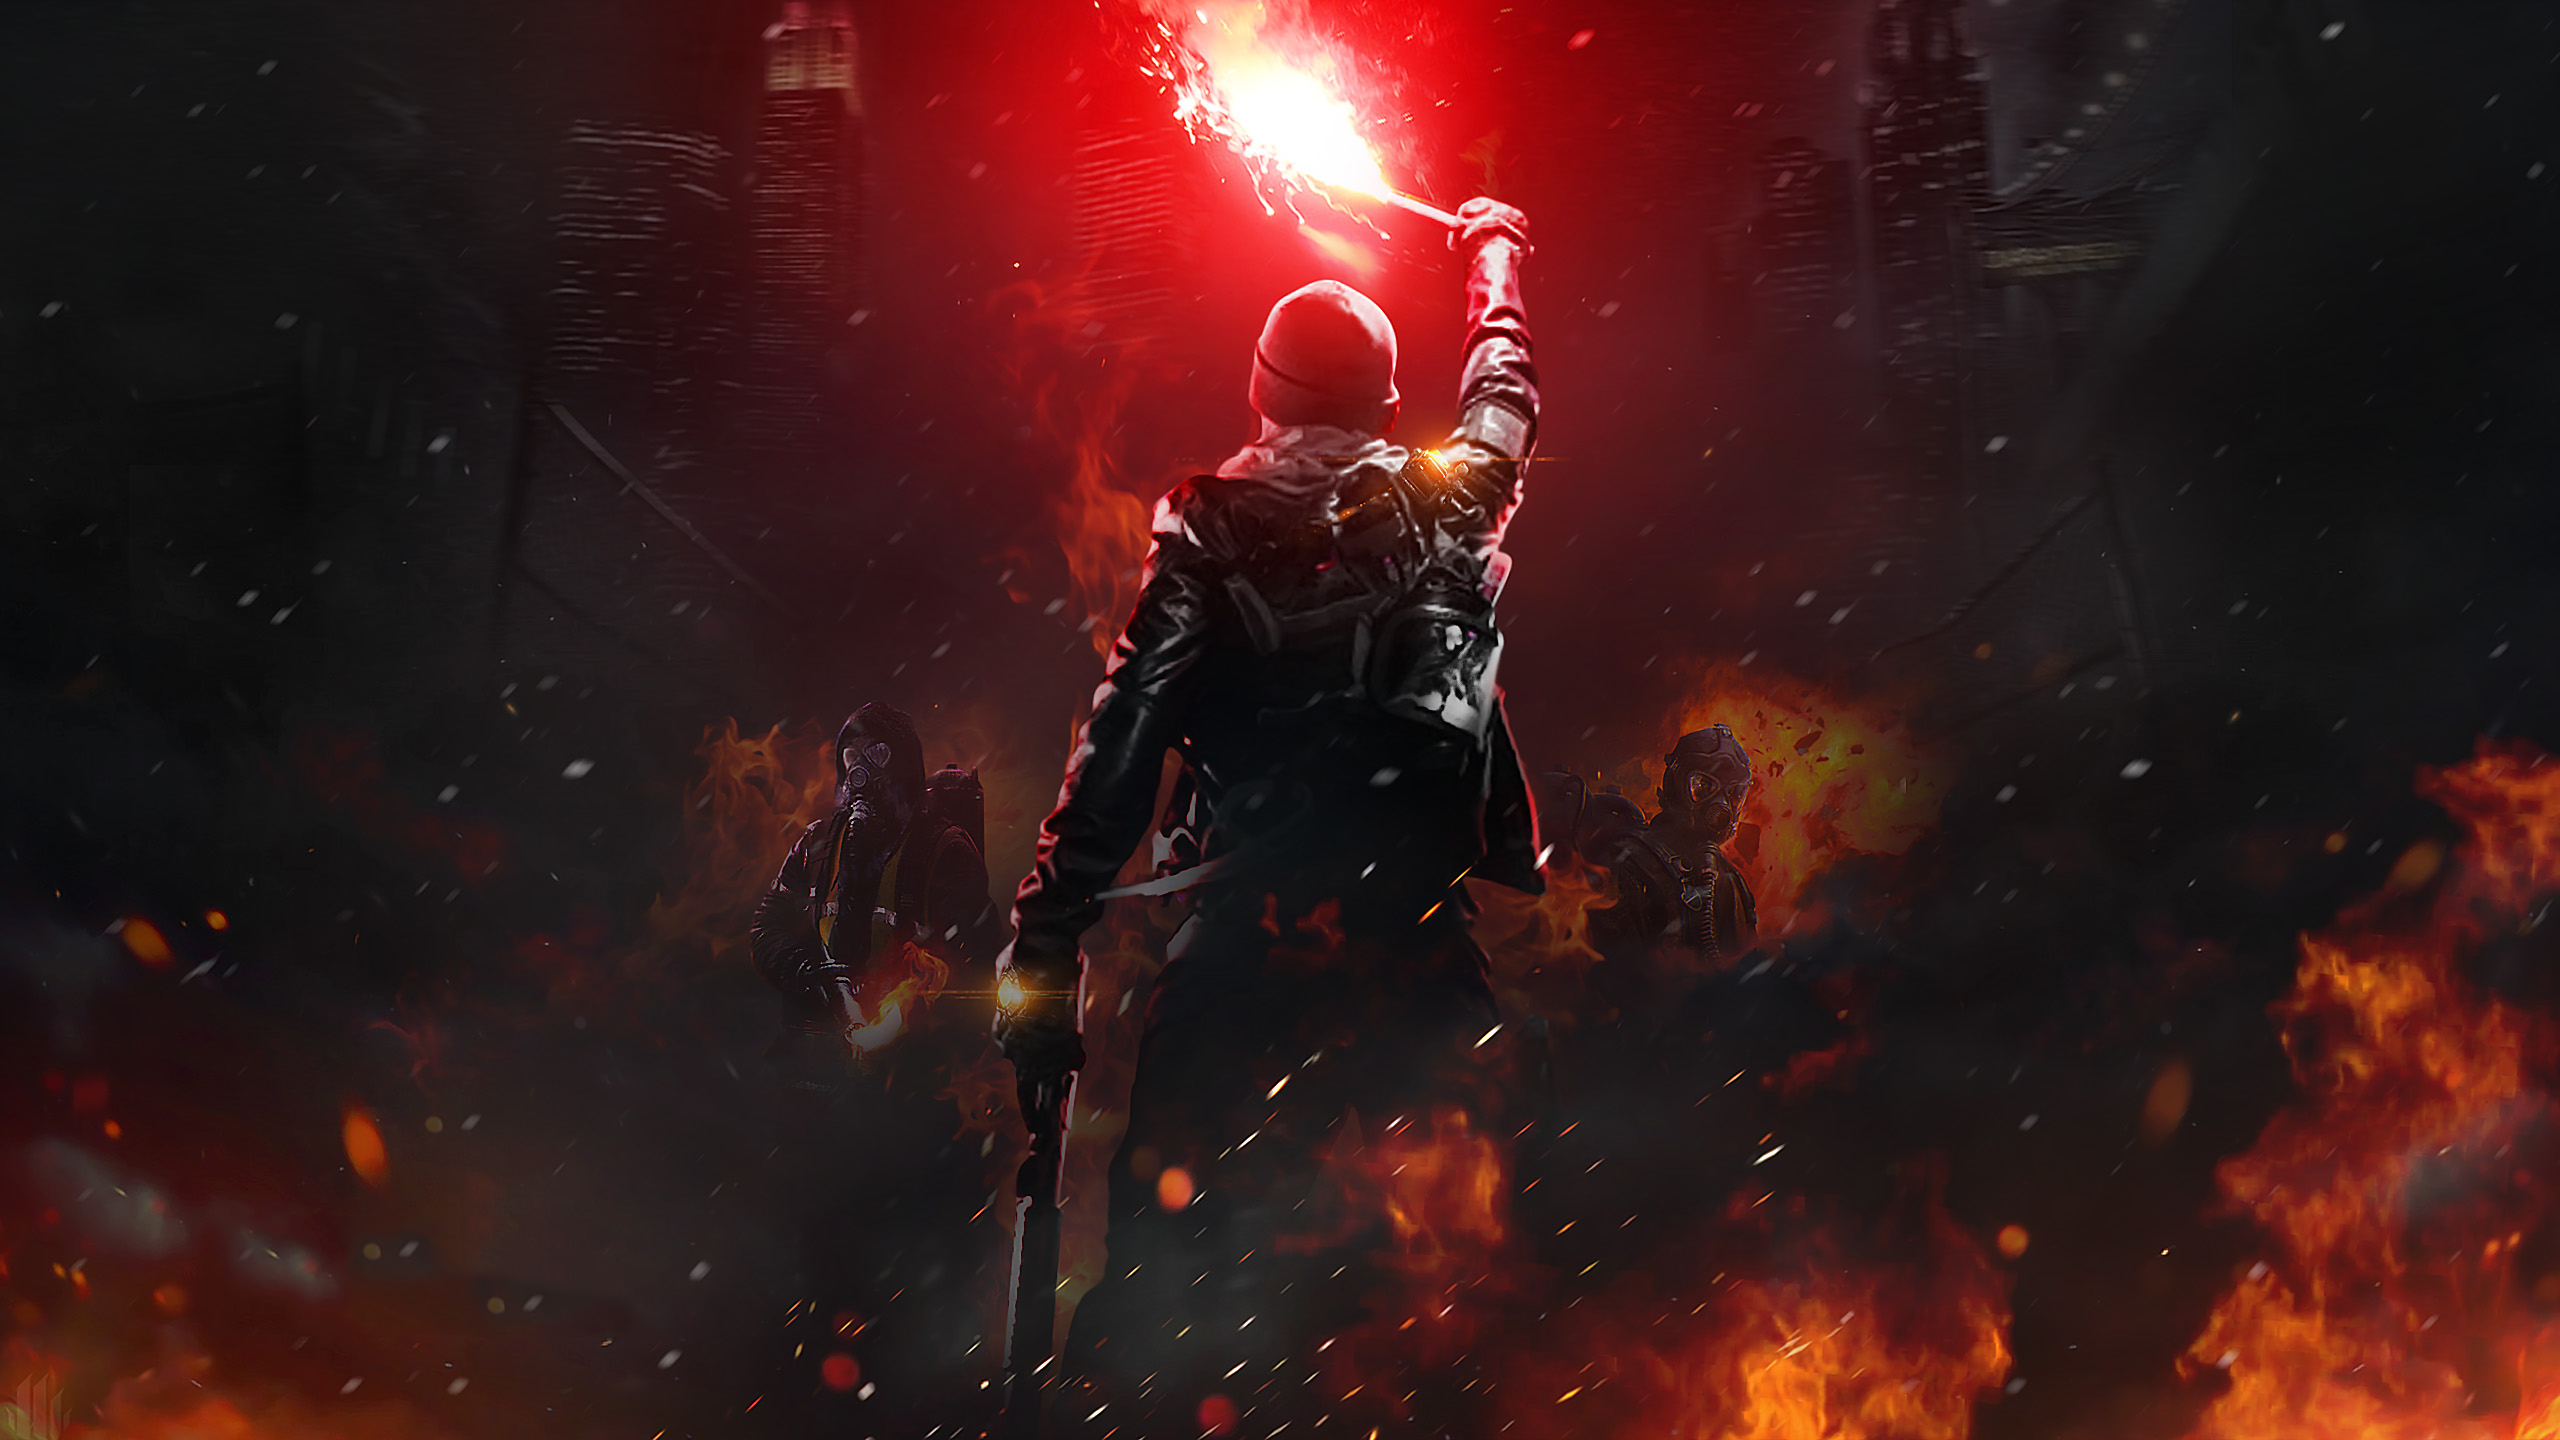 Hd Tom Clancys The Division Hd Games 4k Wallpapers Images